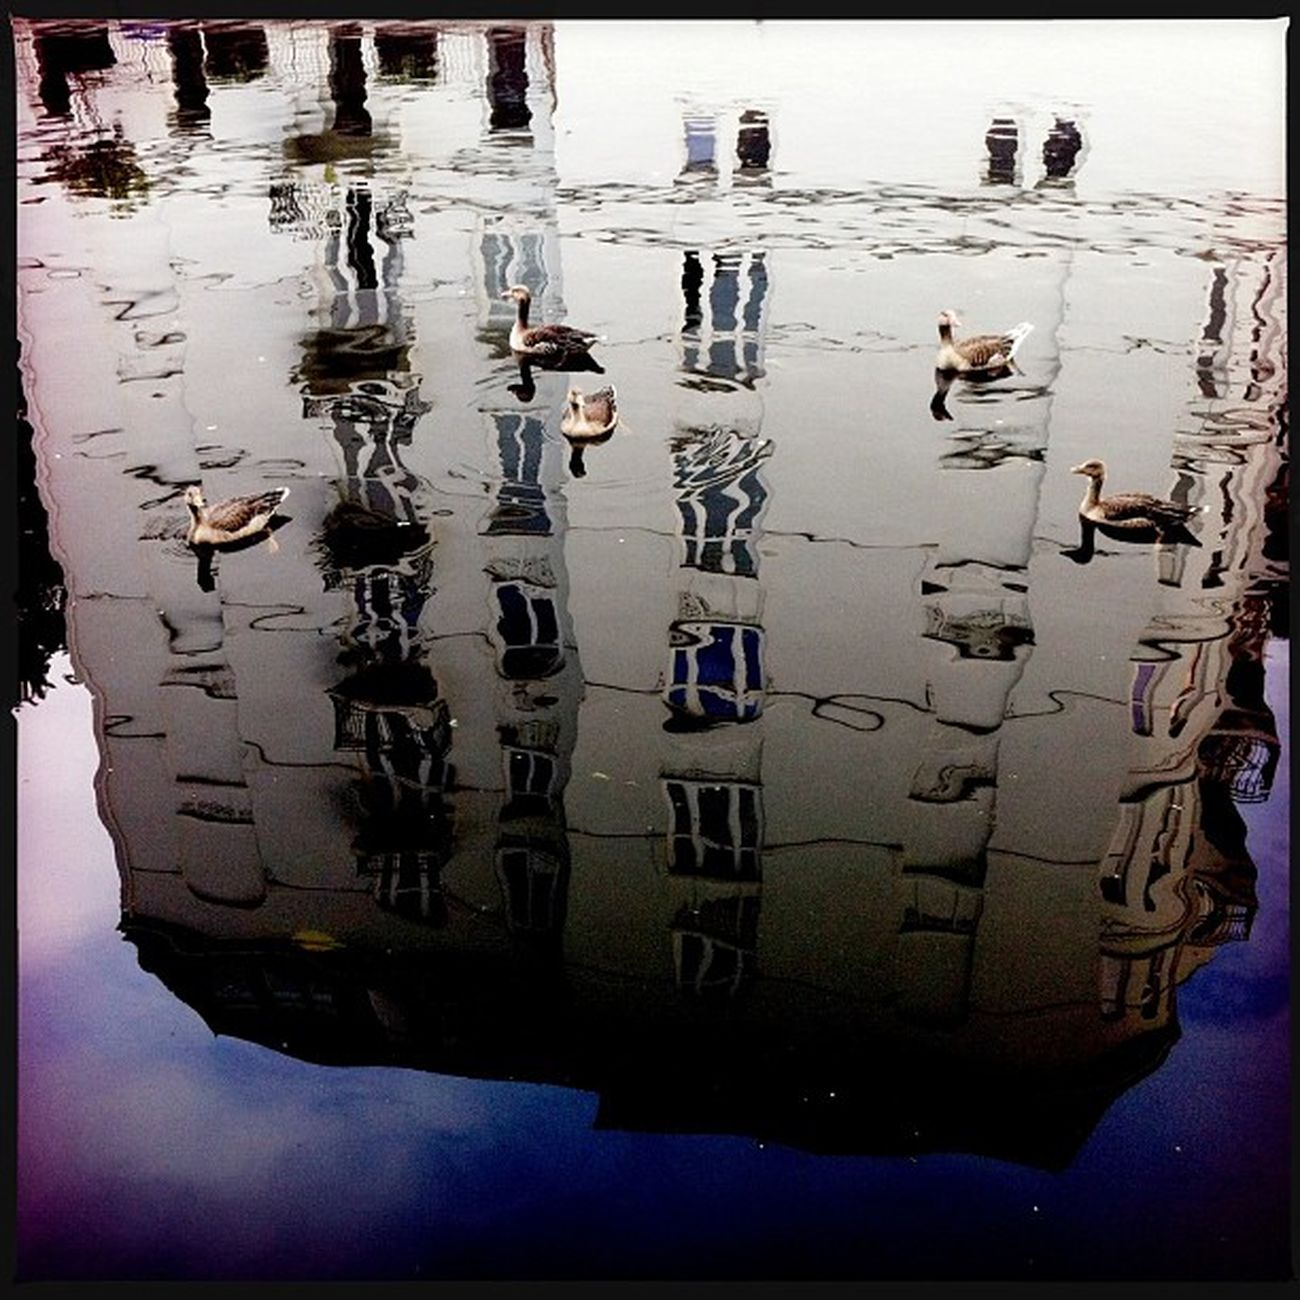 Enten auf Haus Reflection Clouds Water Hipstamatic Windows Blue Germany White Hamburg Ducks Deutschland Hh